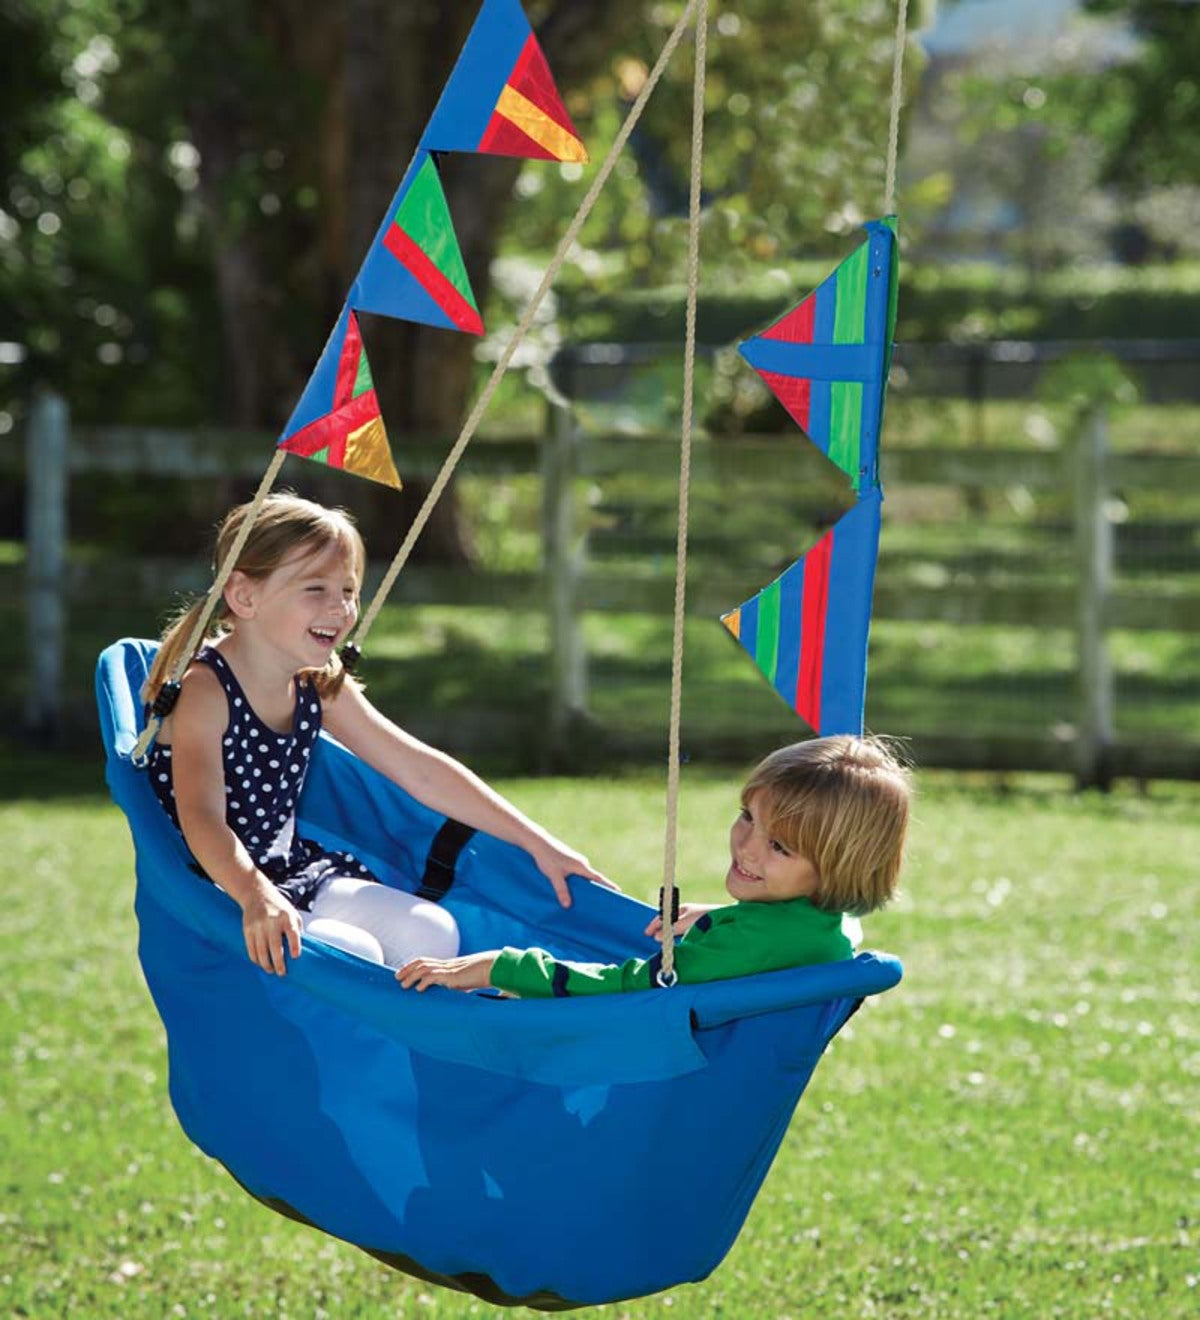 Regatta Boat Tree Swing with Colorful Flags and Mesh Bottom